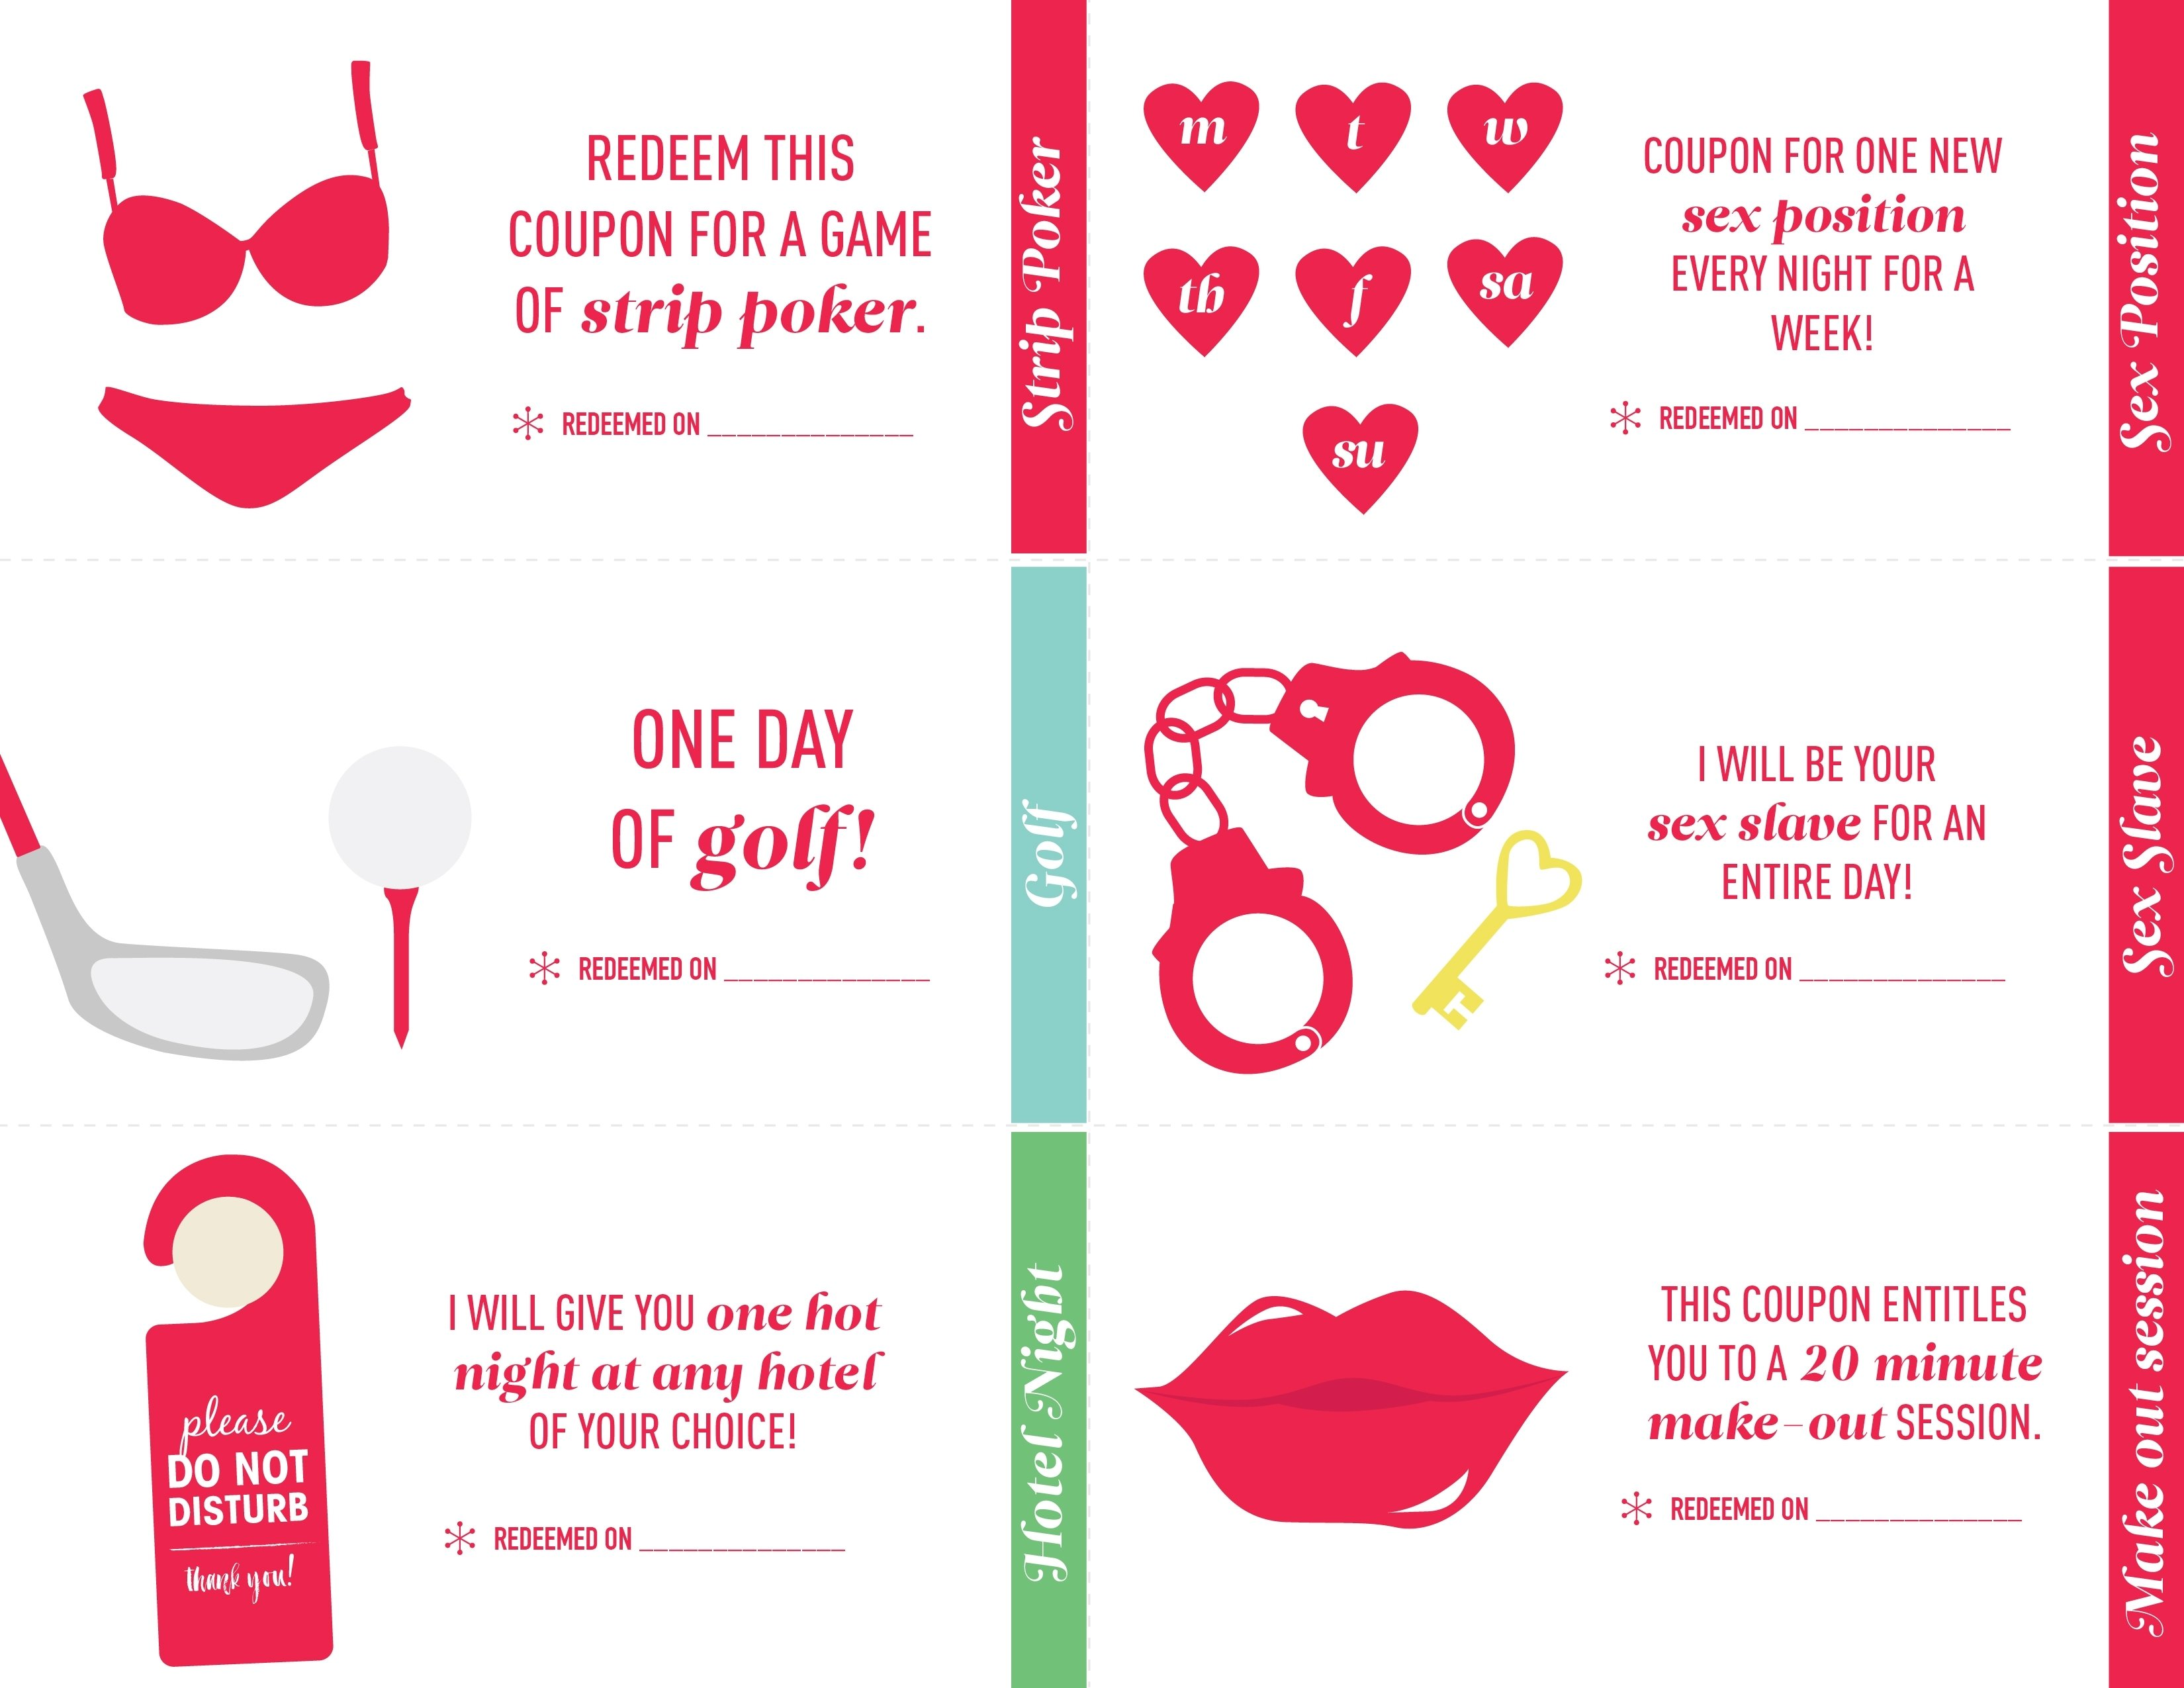 10 Wonderful Coupon Book Ideas For Girlfriend 28 images of for him love coupons template infovia 1 2021